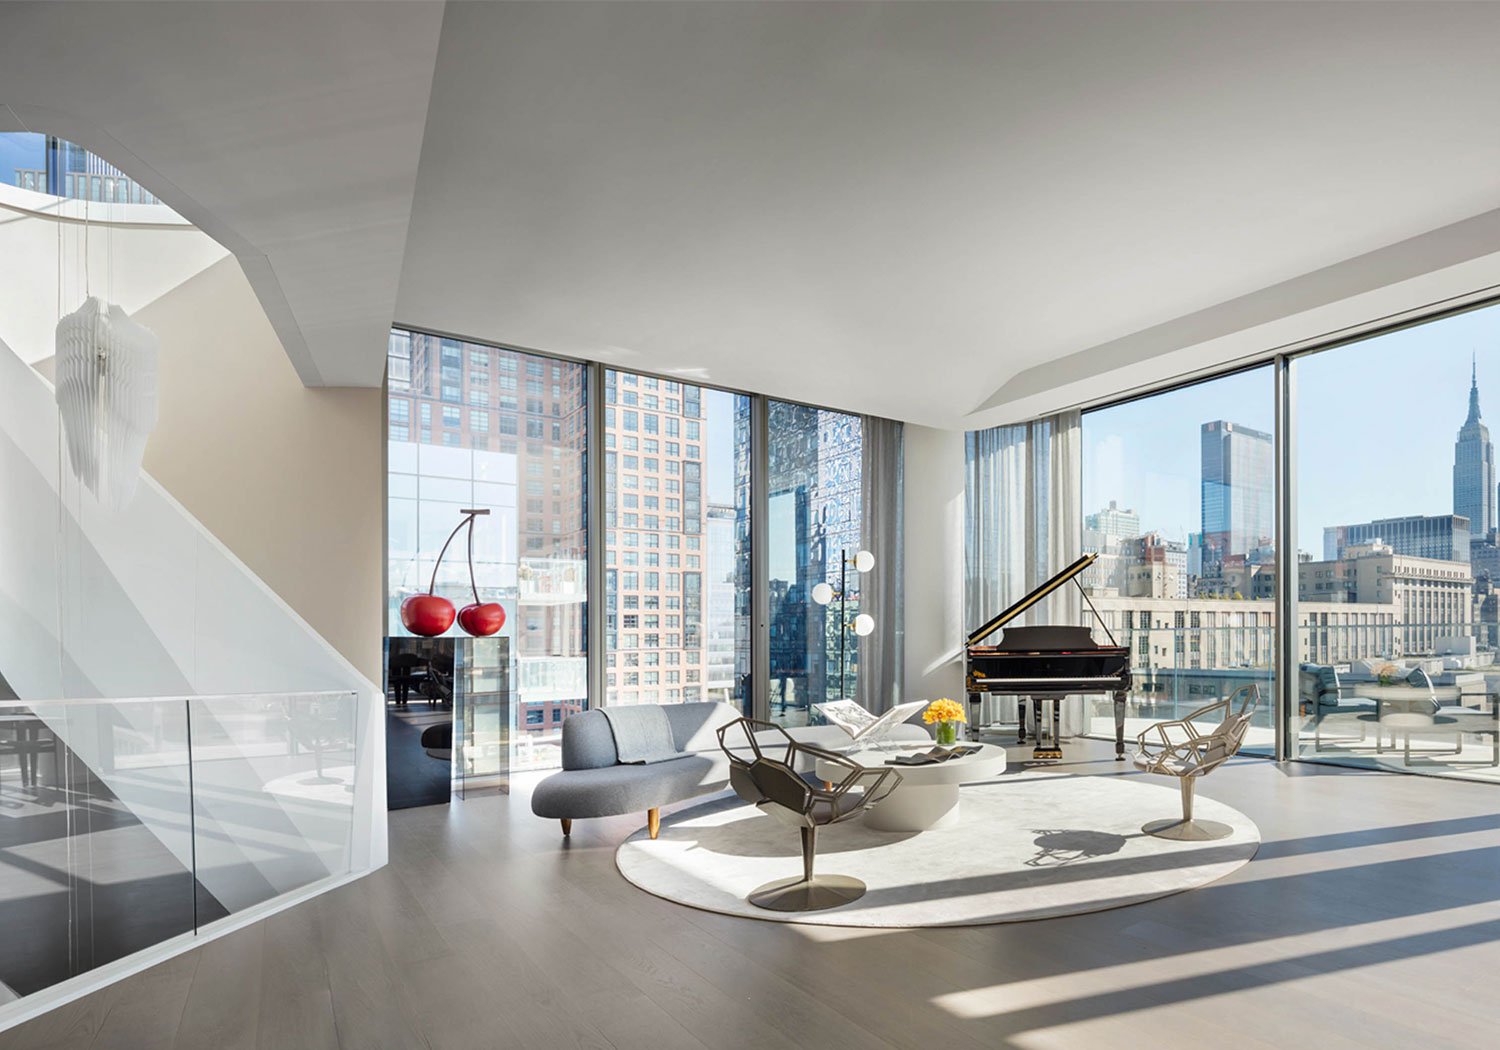 Zaha Hadid Penthouse, 520 West 28th Street, Chelsea, New York | A Living View |Corcoran | Finest Residences